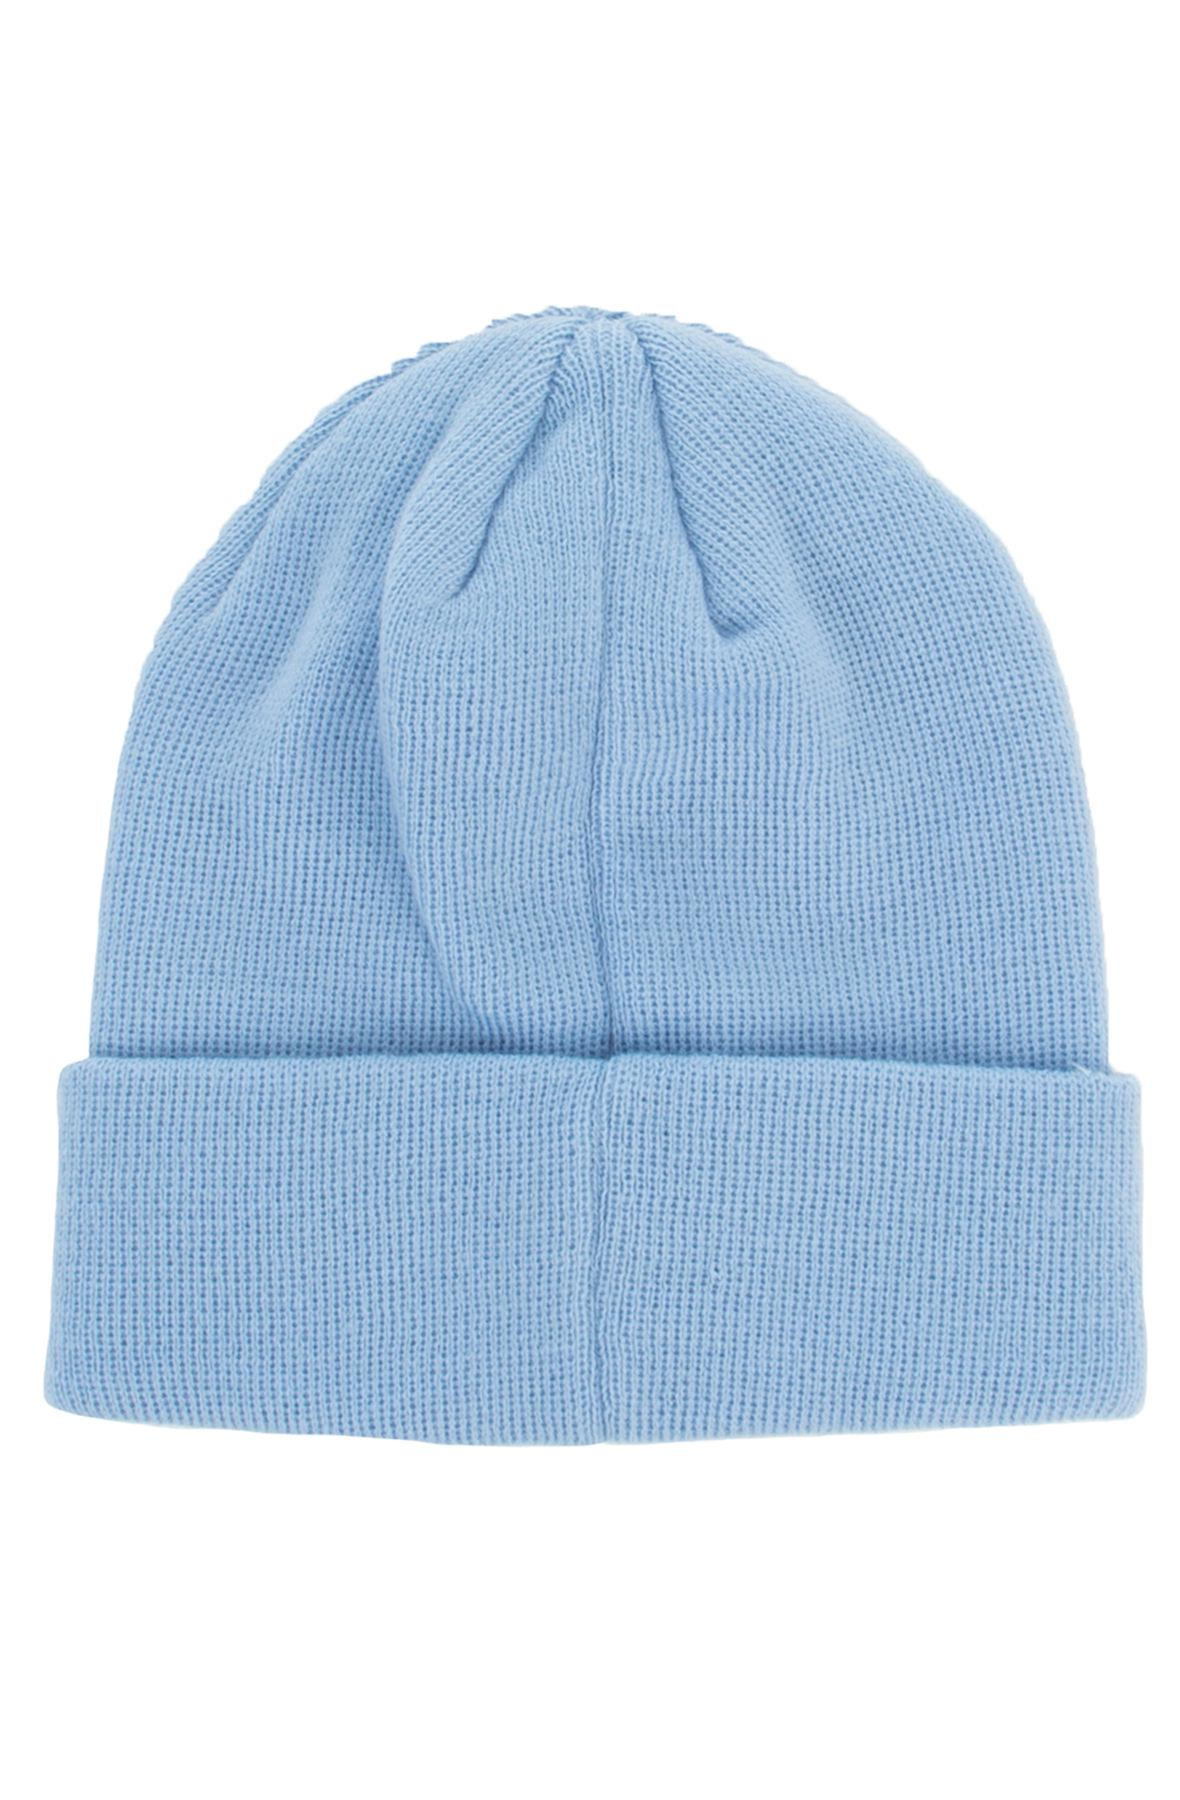 1f04b204 where can i buy dolphins bobble hat amazon 9ddd9 775a6